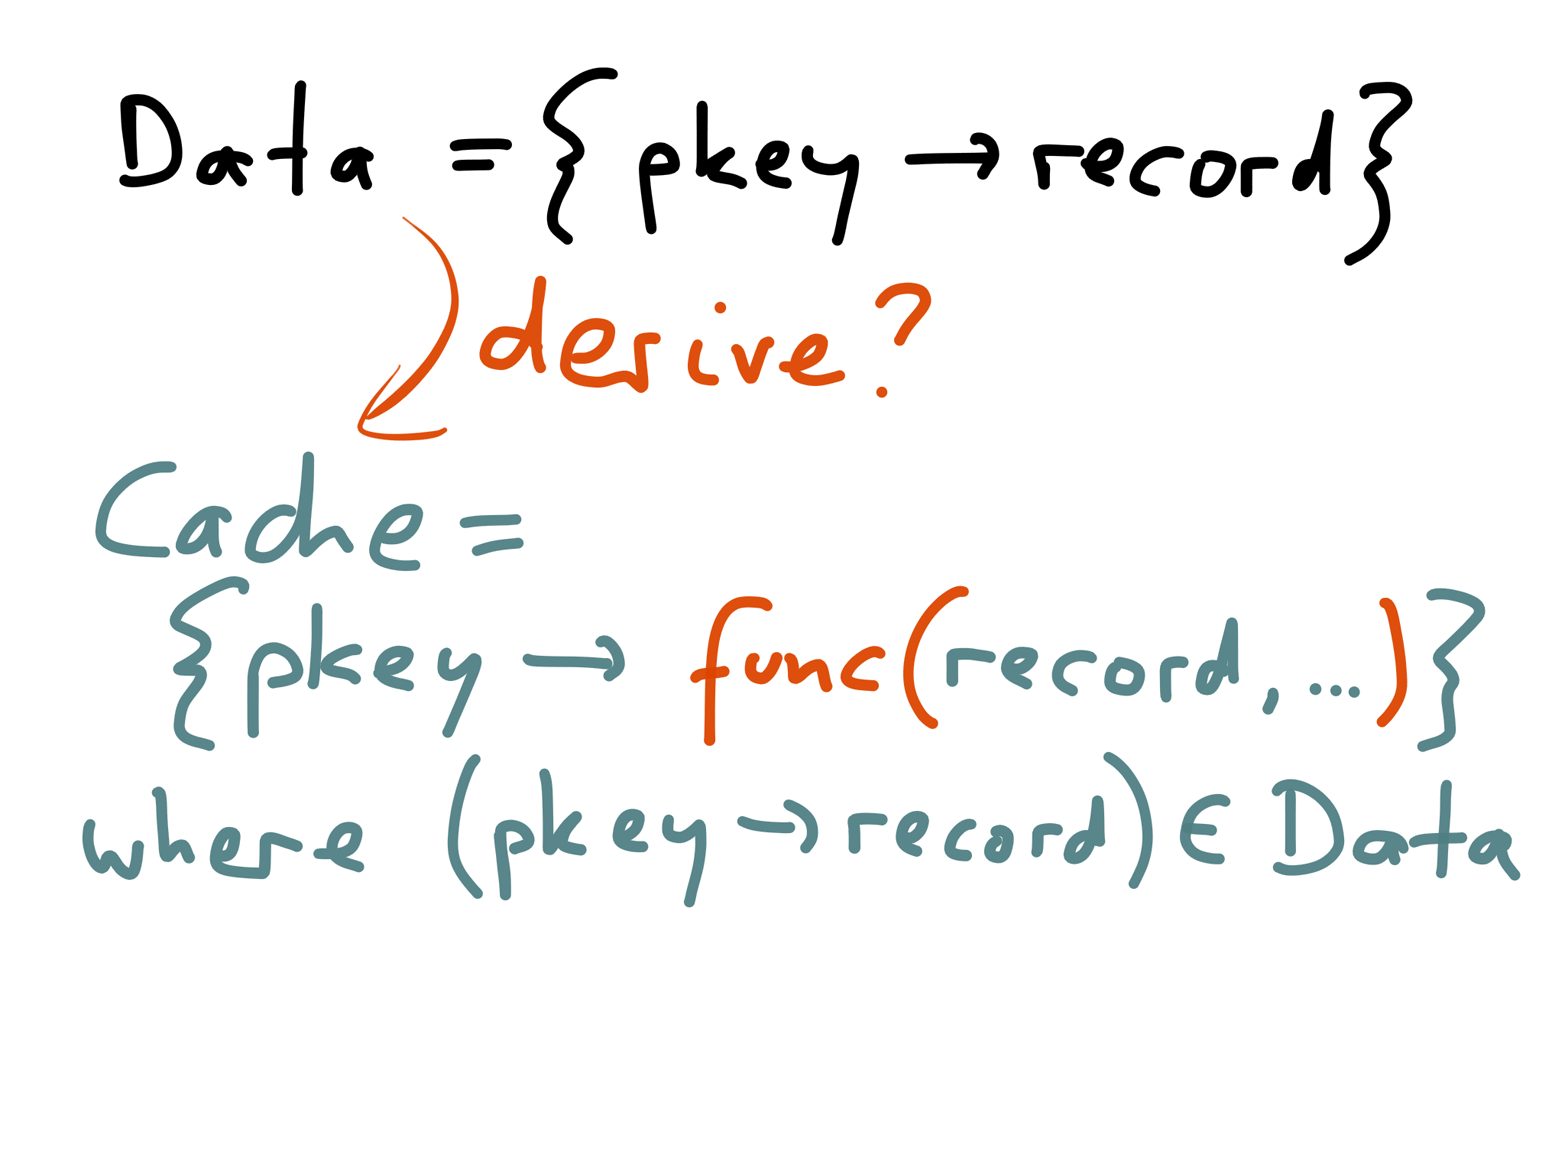 Similarly to an index, the contents of a cache are derived from the contents of the database.